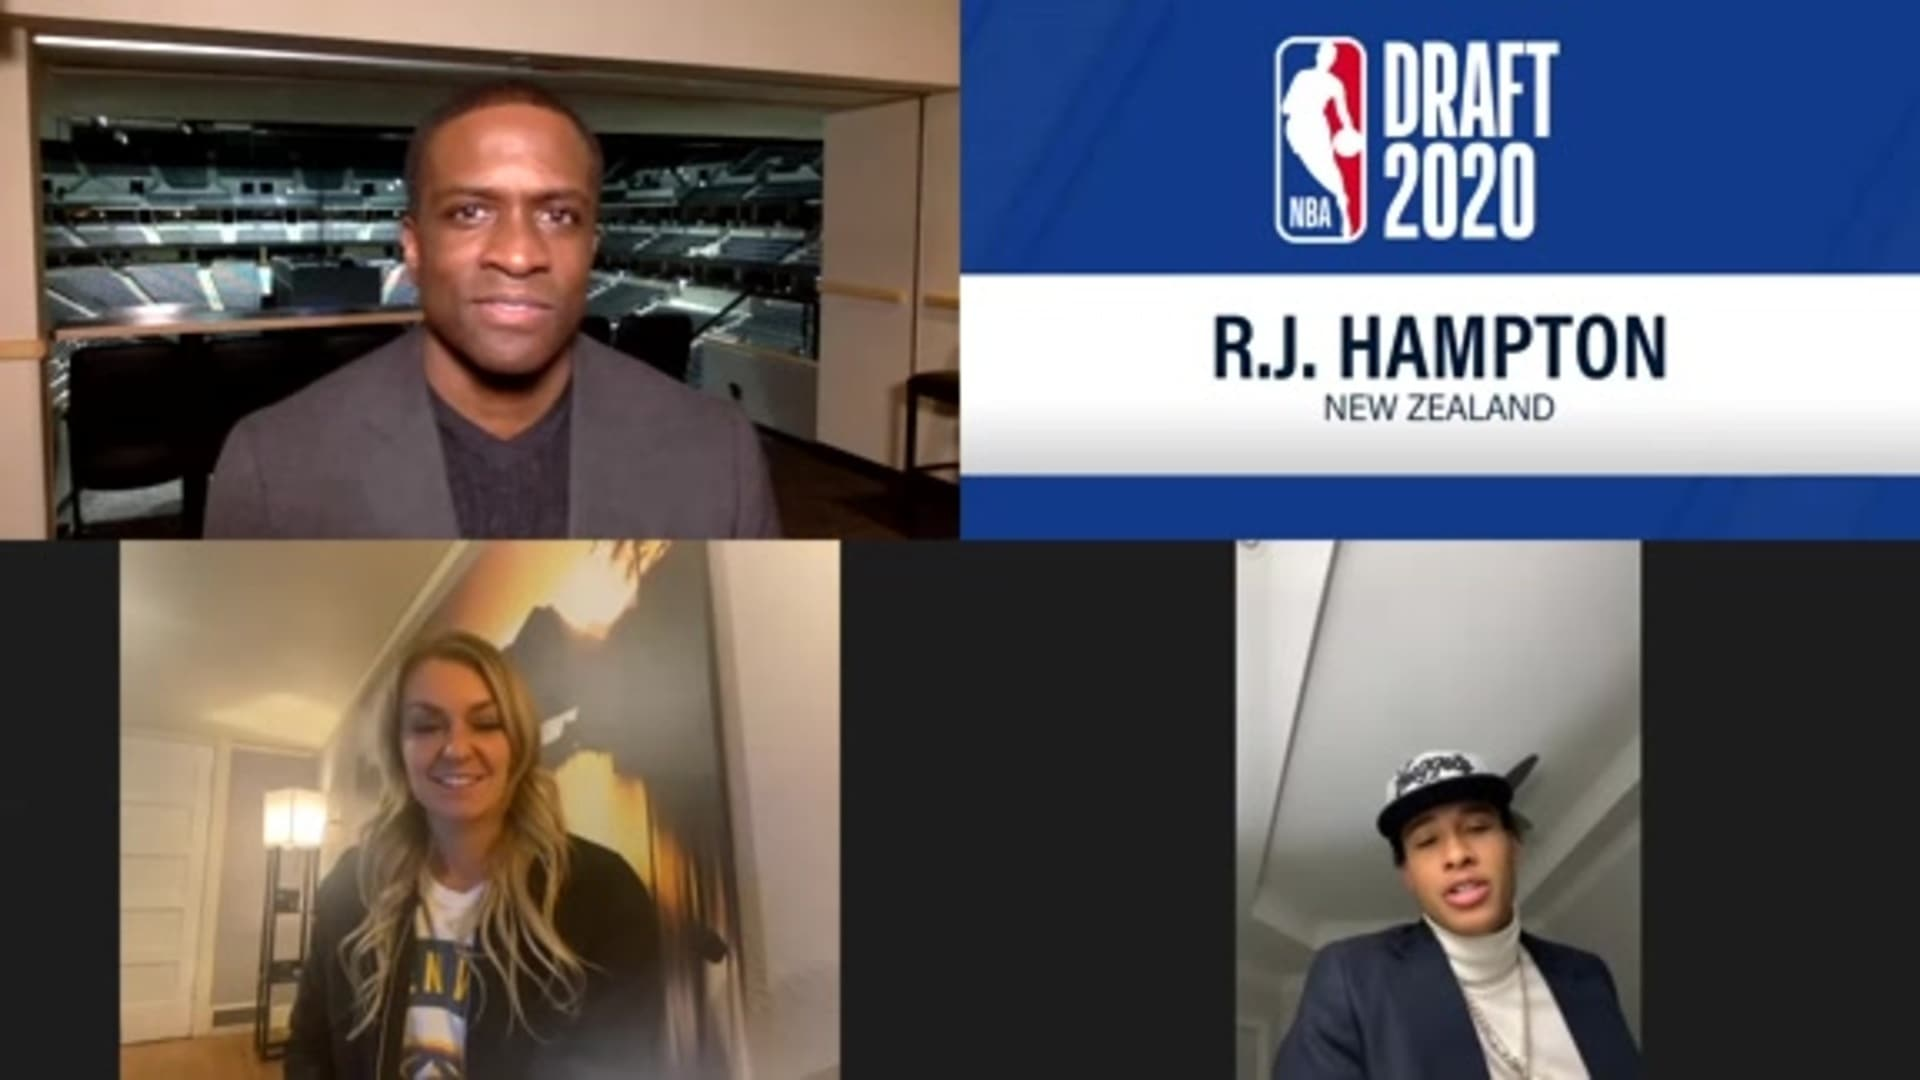 R.J. Hampton 2020 Draft interview